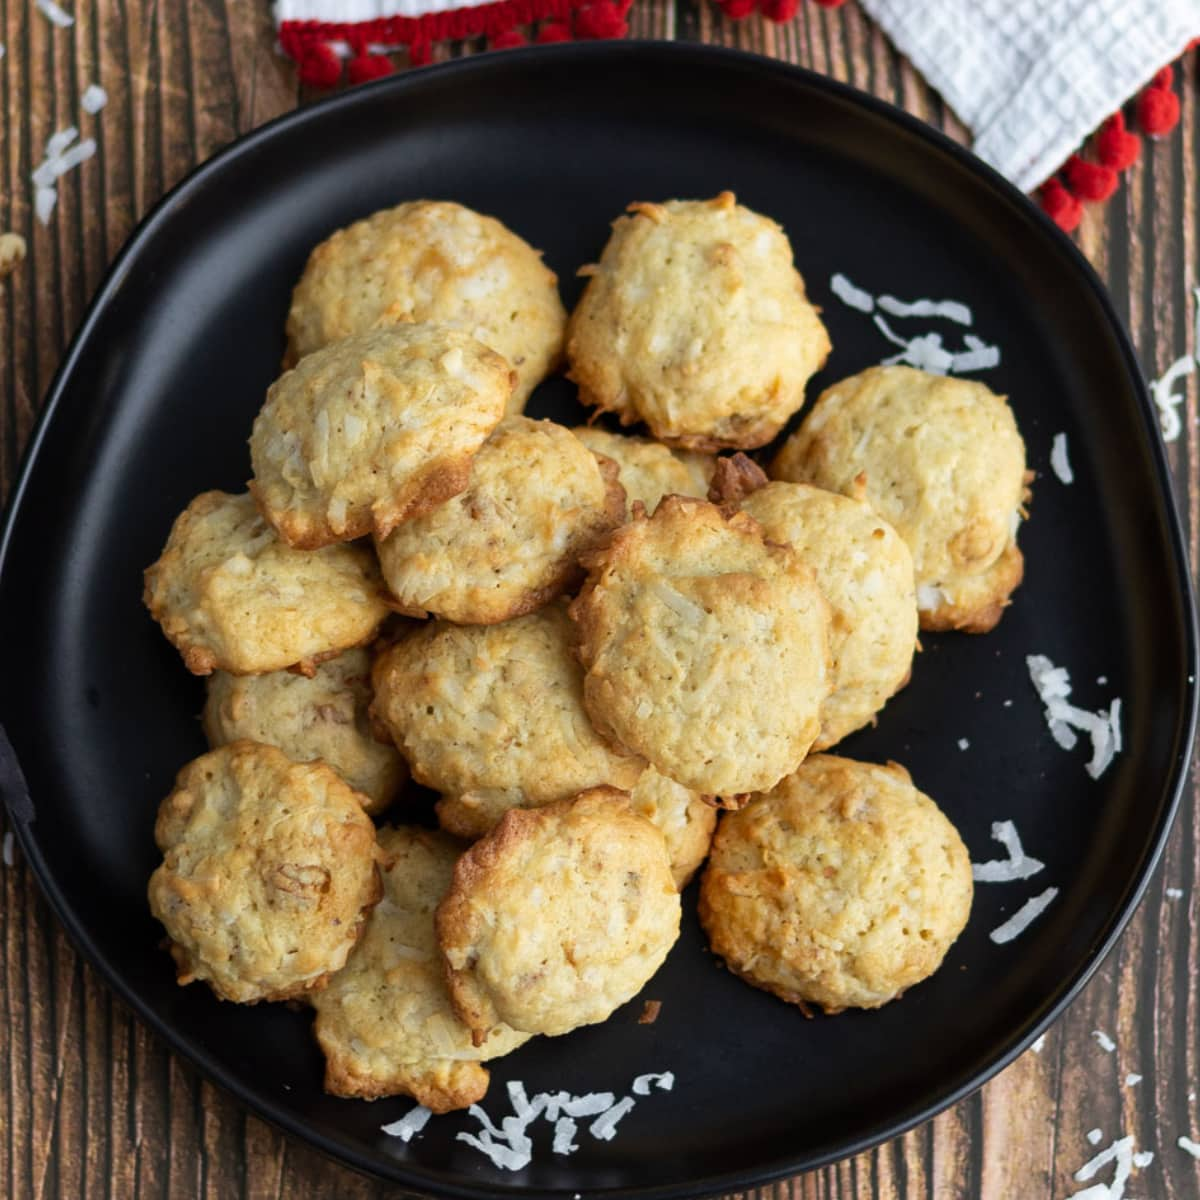 PIle of lightly browned cookies on a black plate